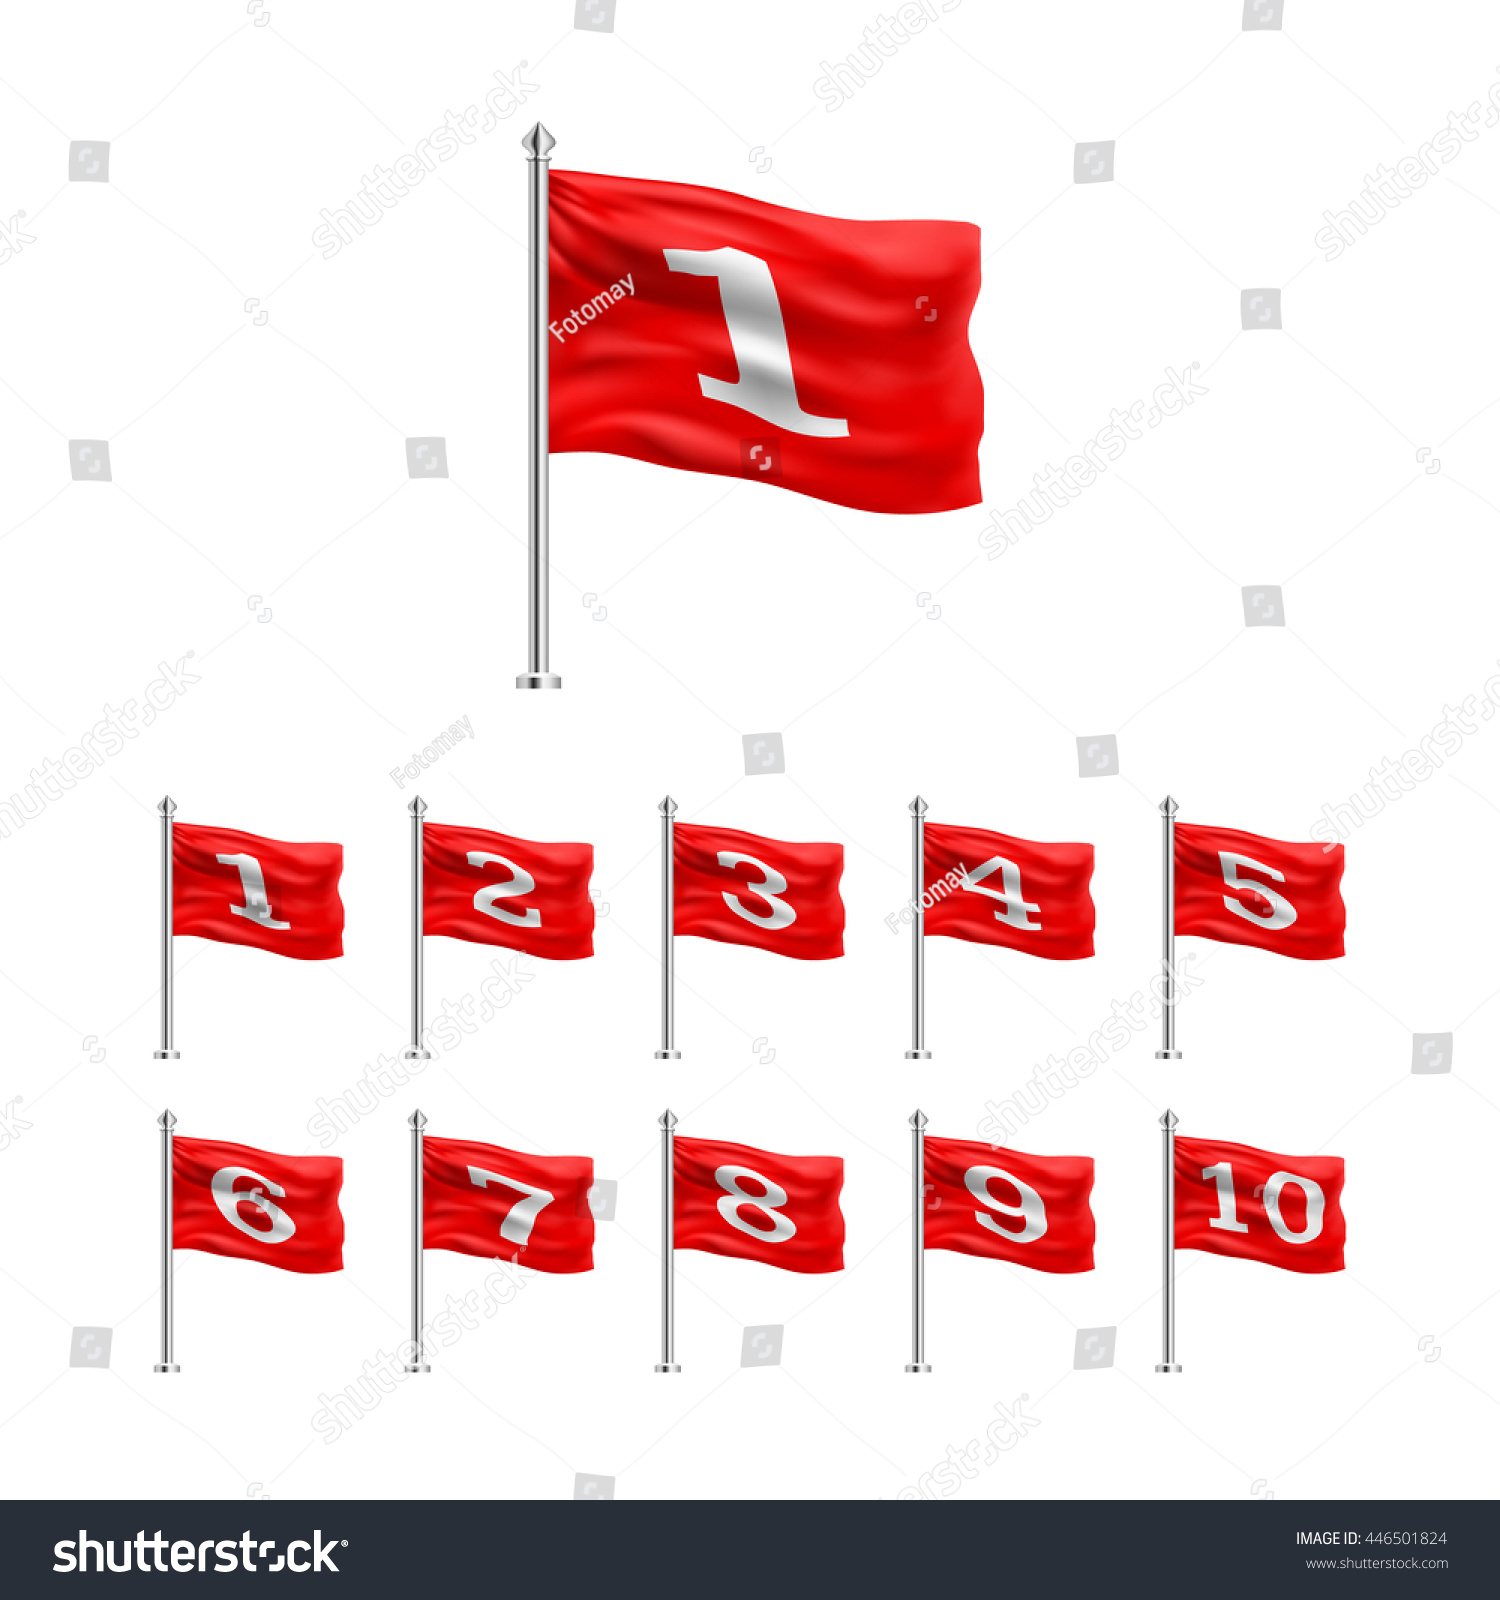 set red flags numbers 1 10 stock vector 446501824 shutterstock